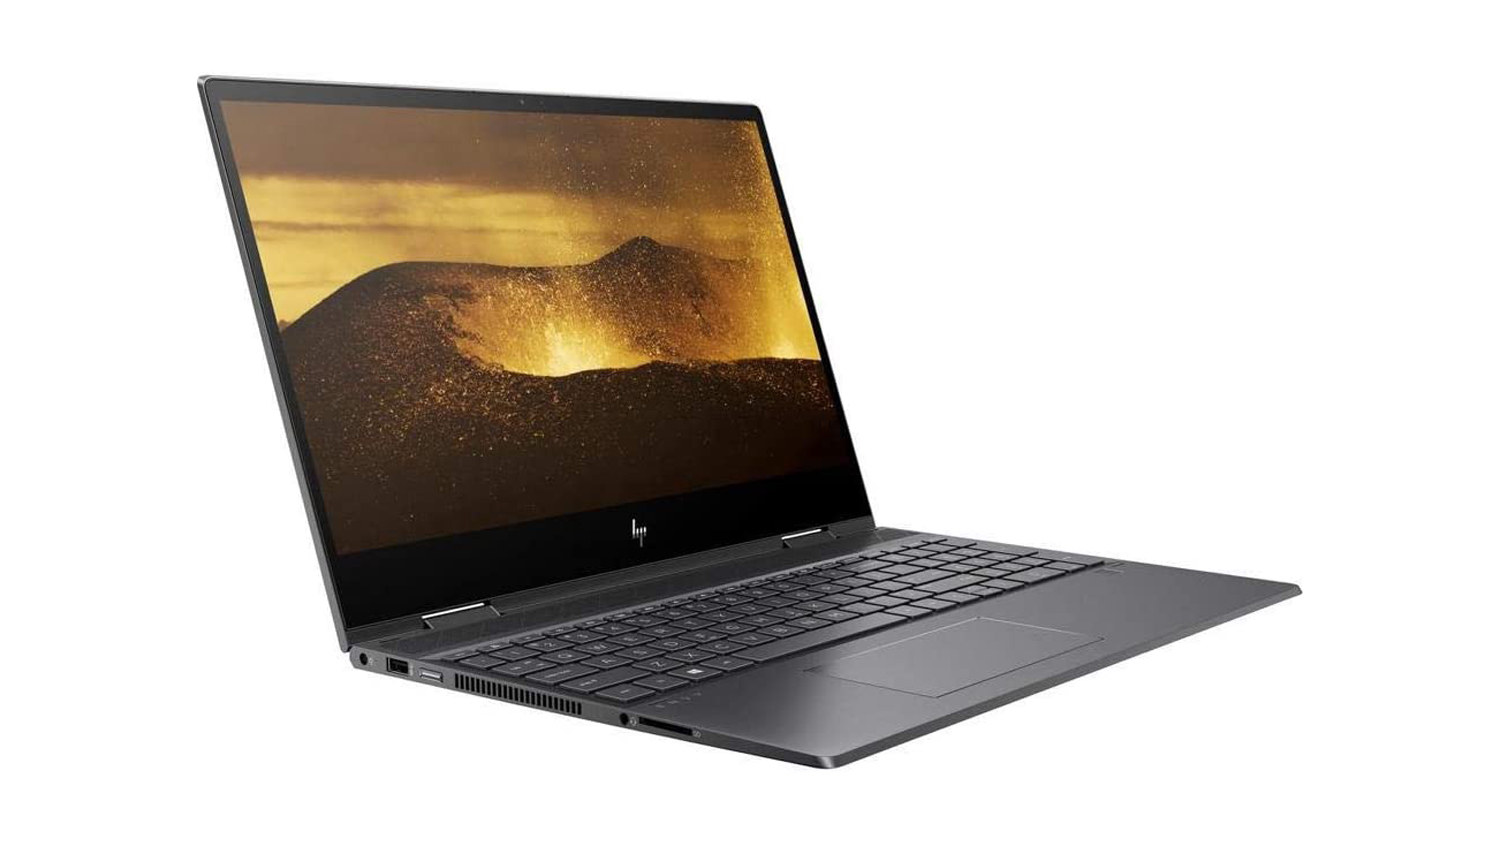 HP Envy x360 15 (2021) at an angle against a white background